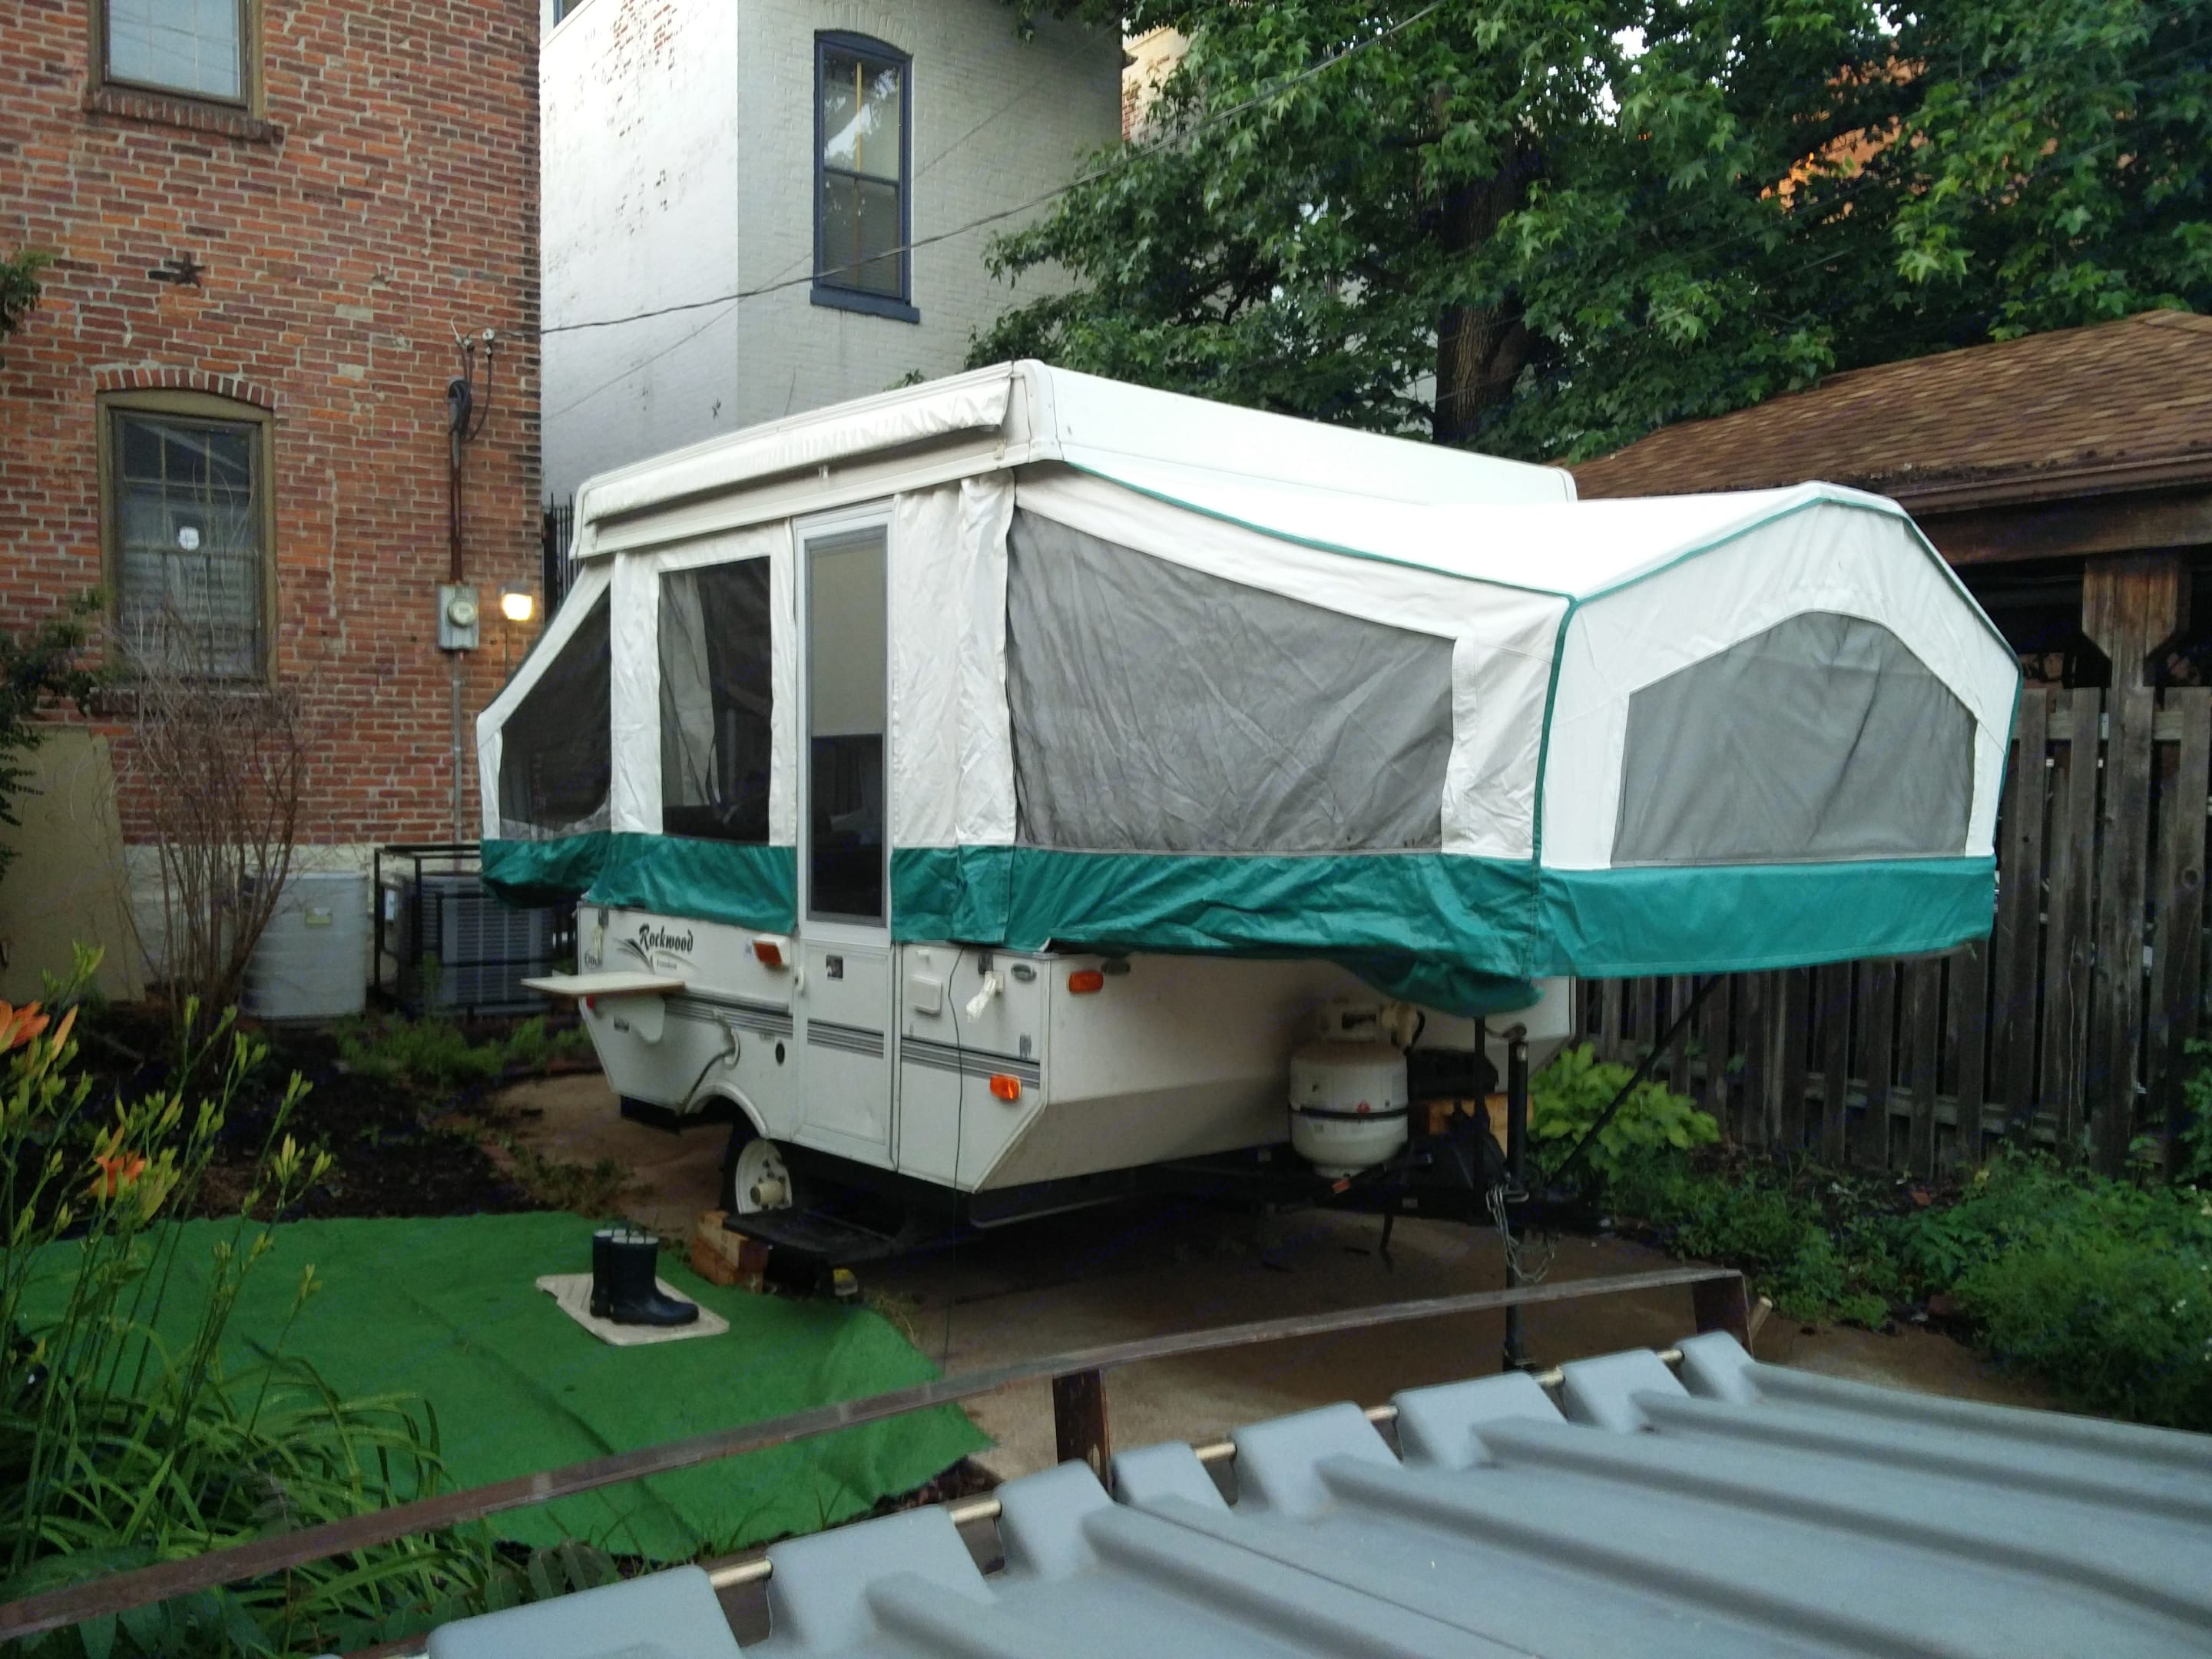 A well-maintained camper, easy to tow, park, set-up, and take-down. Has levelling feet, LP tank, 20 gallon fresh-water tank. Forest River Rockwood Freedom 2003